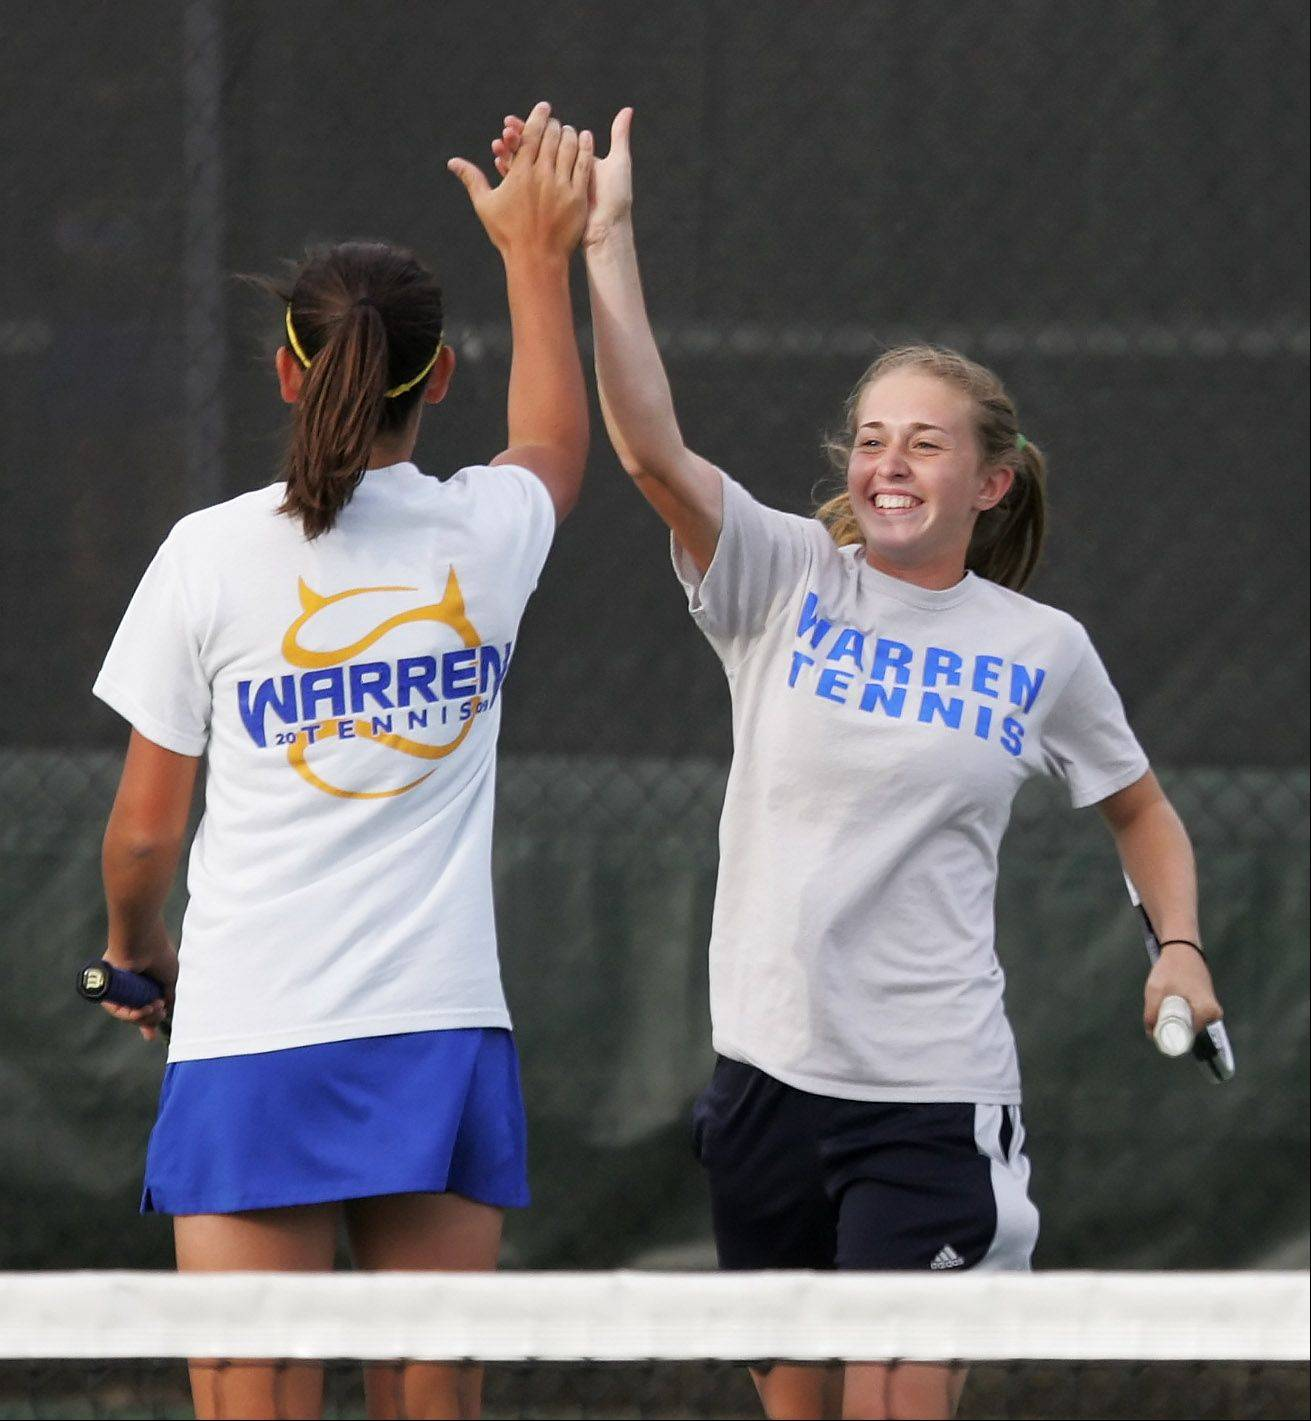 Warren doubles player Courtney Sunday, right, gives her partner, Mikayla Schultz, a high five after a point during Monday's action in Mundelein.